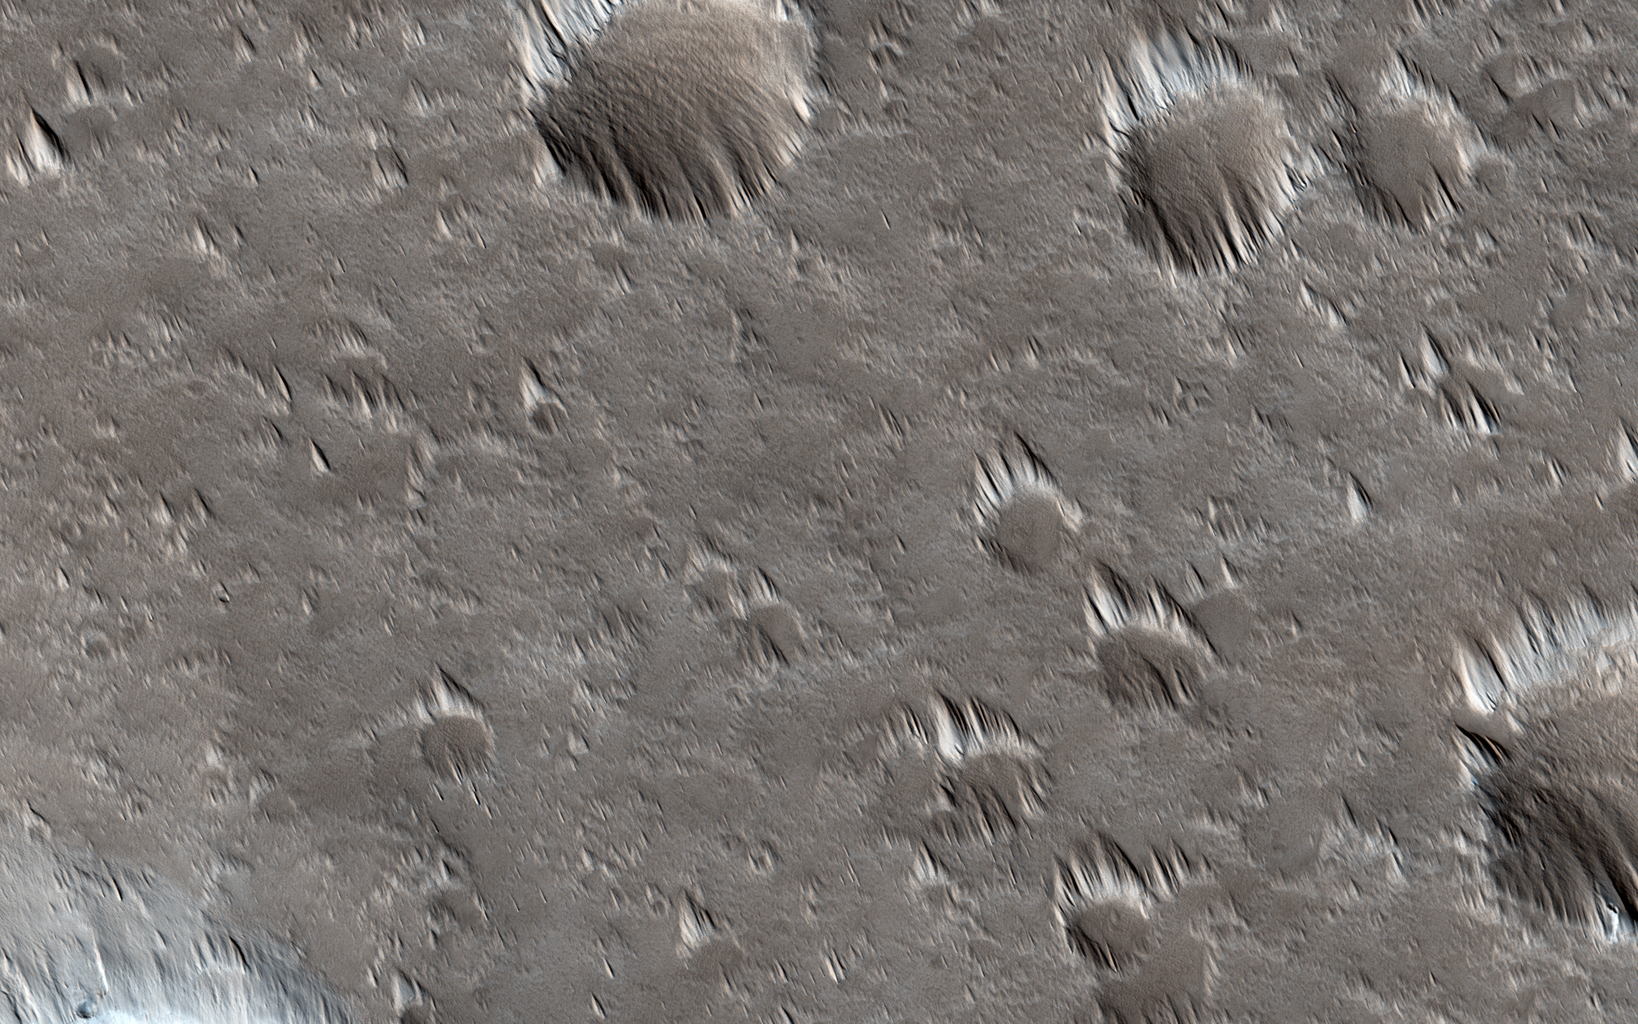 This image captured by NASA's Mars Reconnaissance Orbiter was intended to search for surface changes after three Mars years in a dust-covered region west of the Alba Mons volcano.